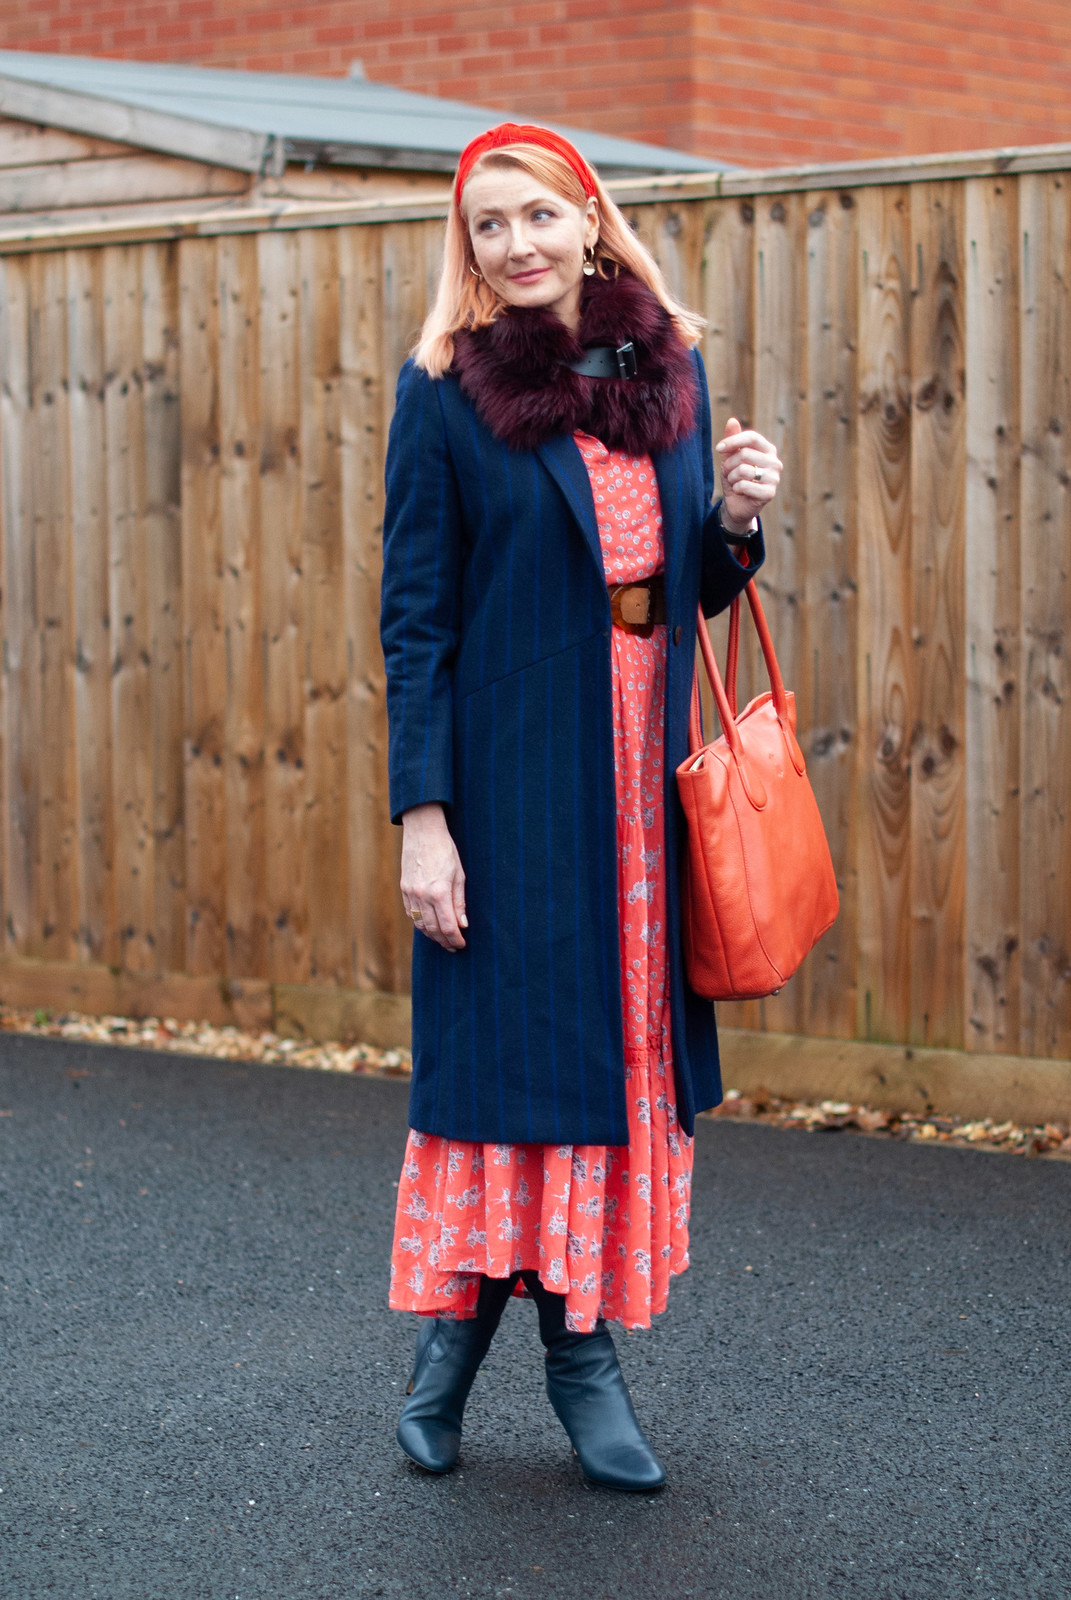 Styling a Boho Dress for Autumn With Layering and Faux Fur | Not Dressed As Lamb, Over 40 Style